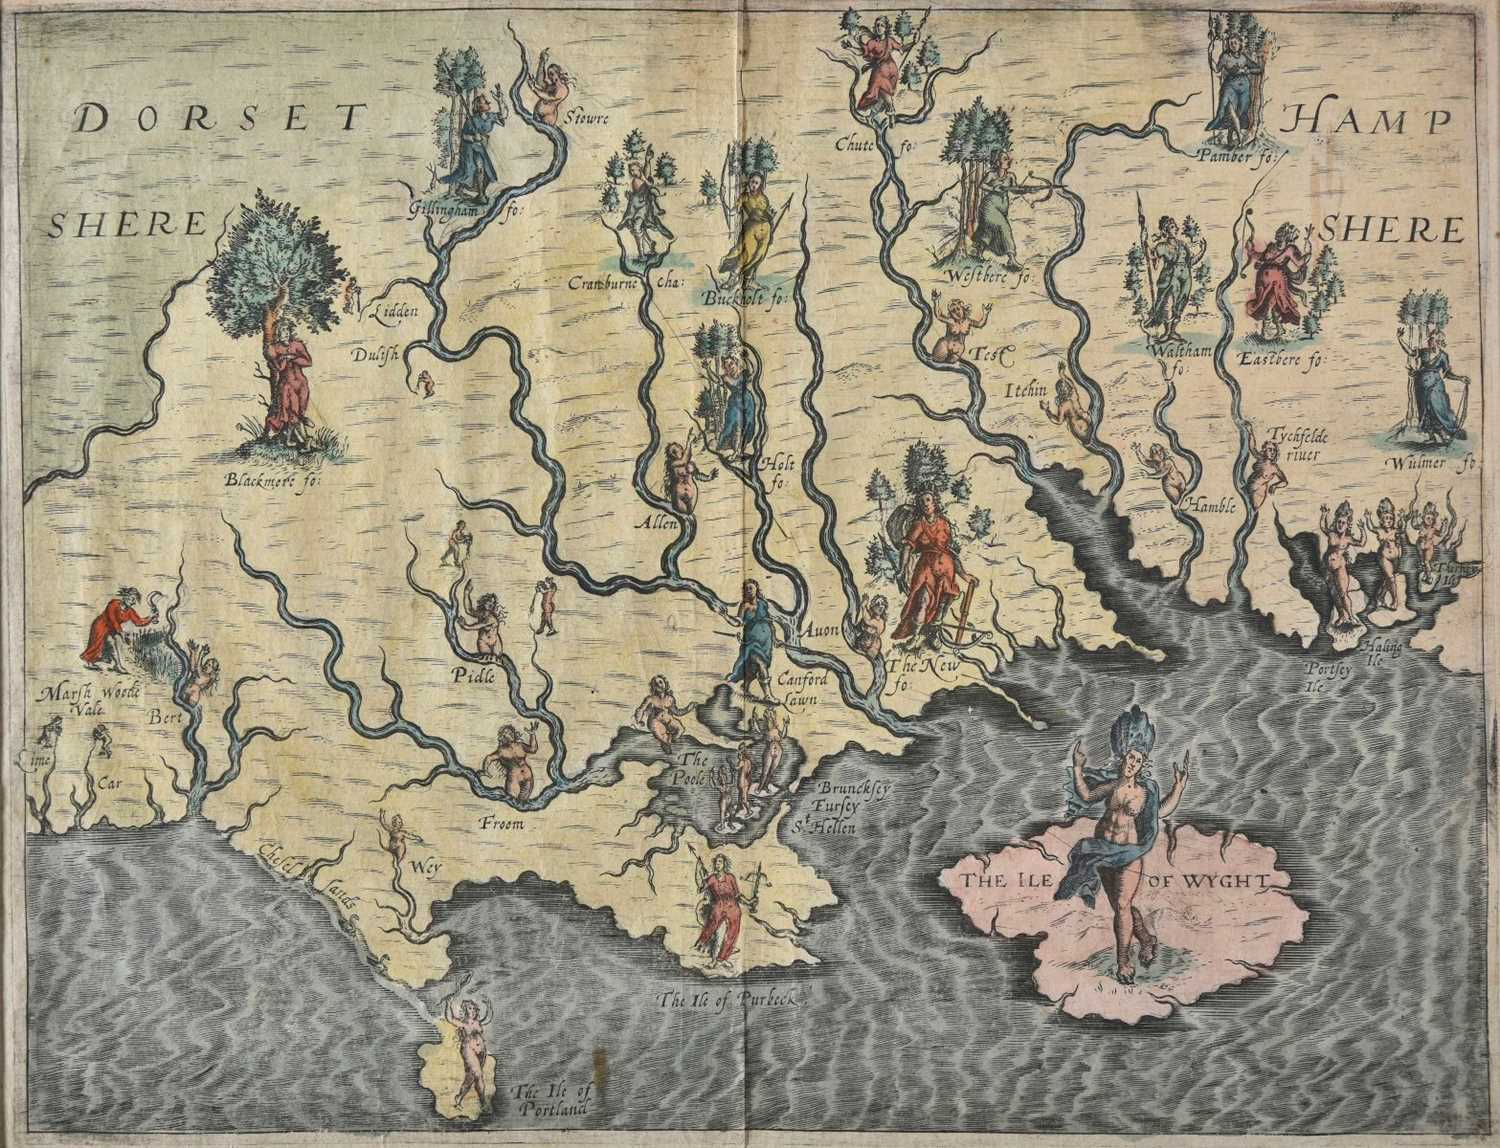 Lot 28-Drayton (Michael). Allegorical map of Hampshire & Dorset, 1612 or later